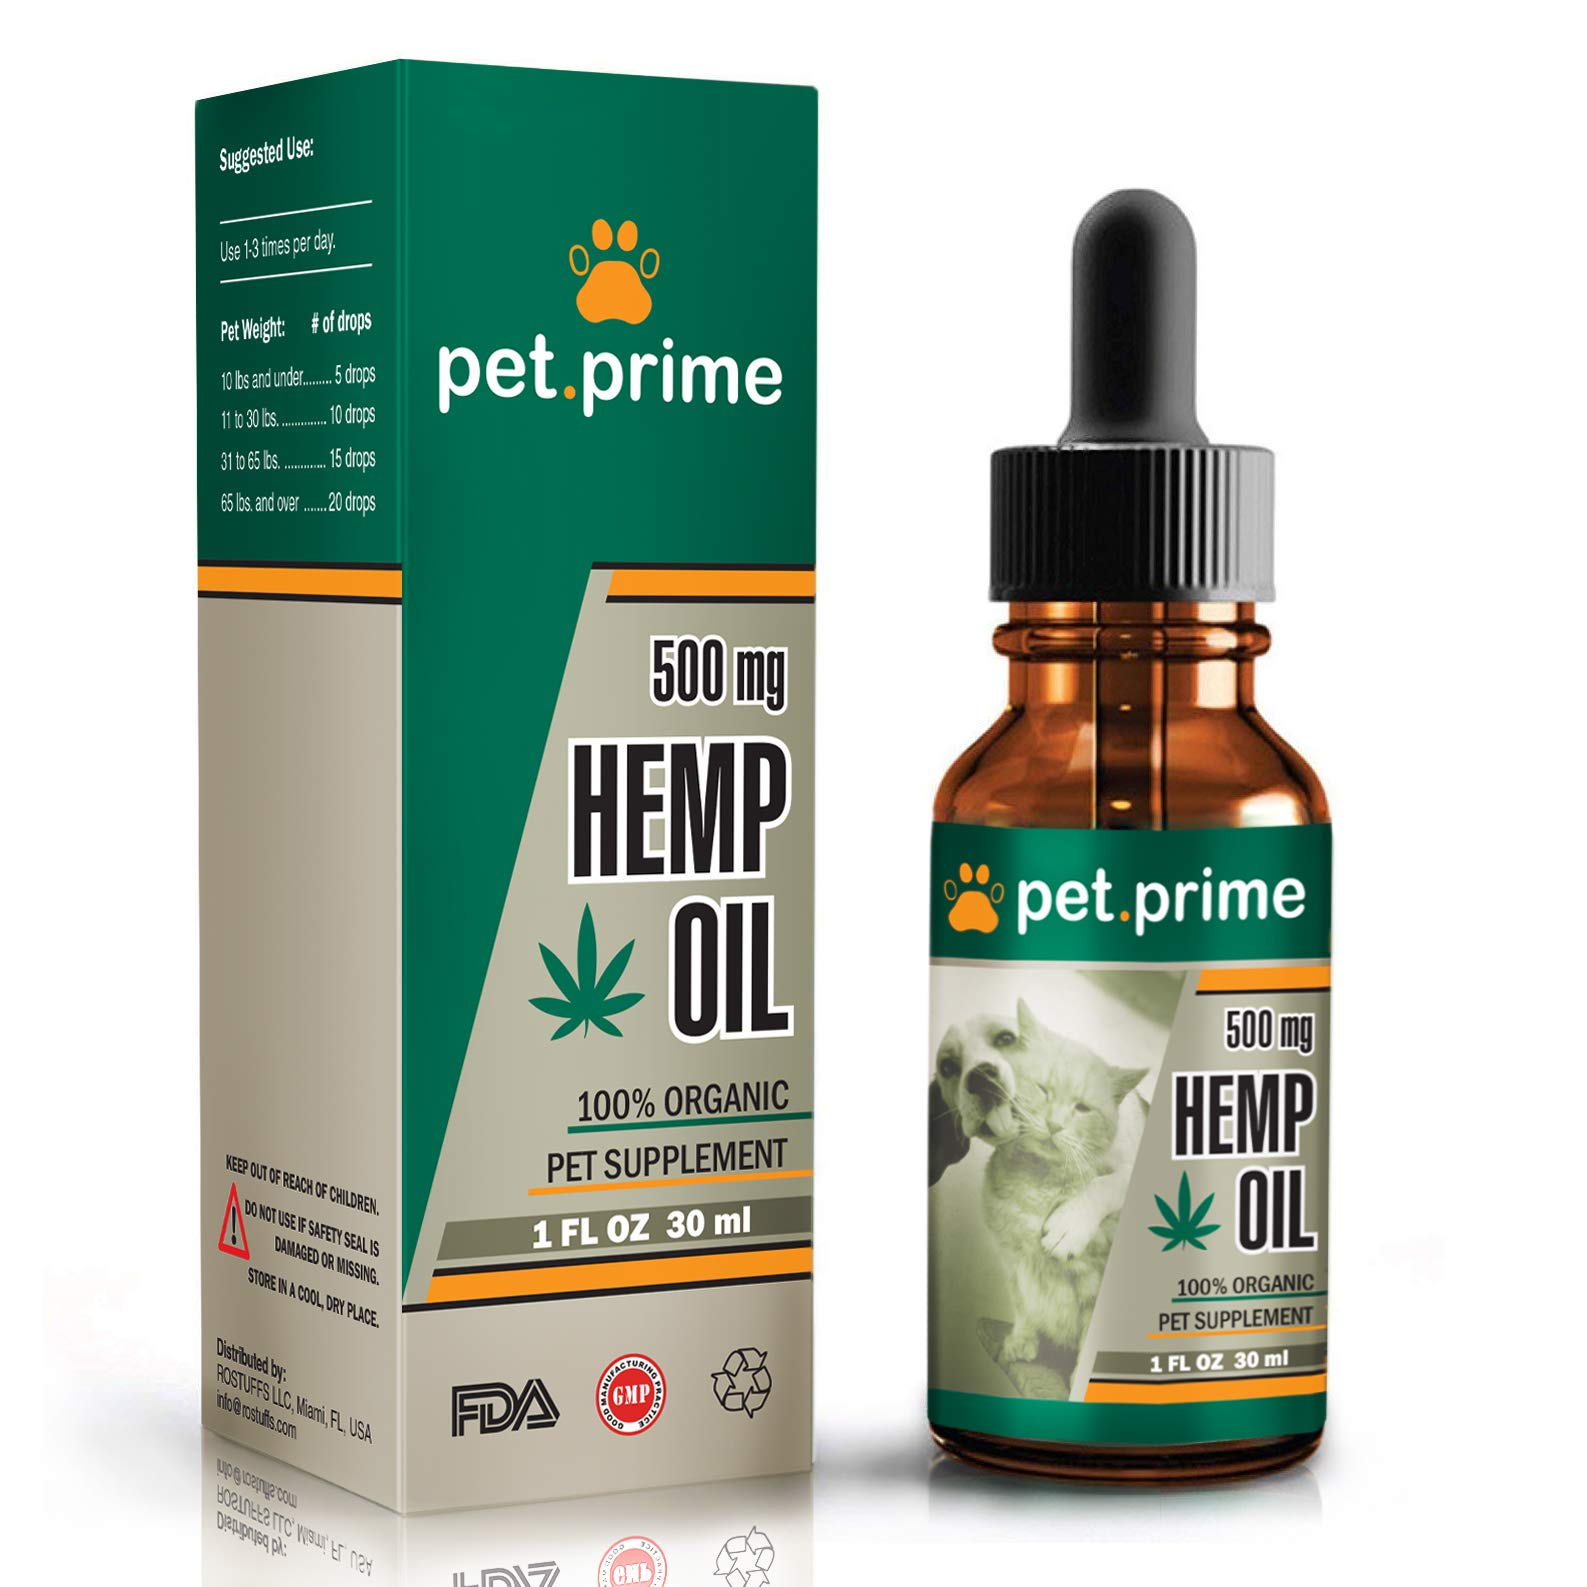 Pet.prime Hemp Seeds Oil for Dogs Cats & Pets — 500 mg (30ml) — 100% Organic Vegan/Food Supplement—Calming Treats —Rescue Remedy — Relieves Pain & Separation Anxiety W/Omega 3, 6 & 9 Fatty Acids